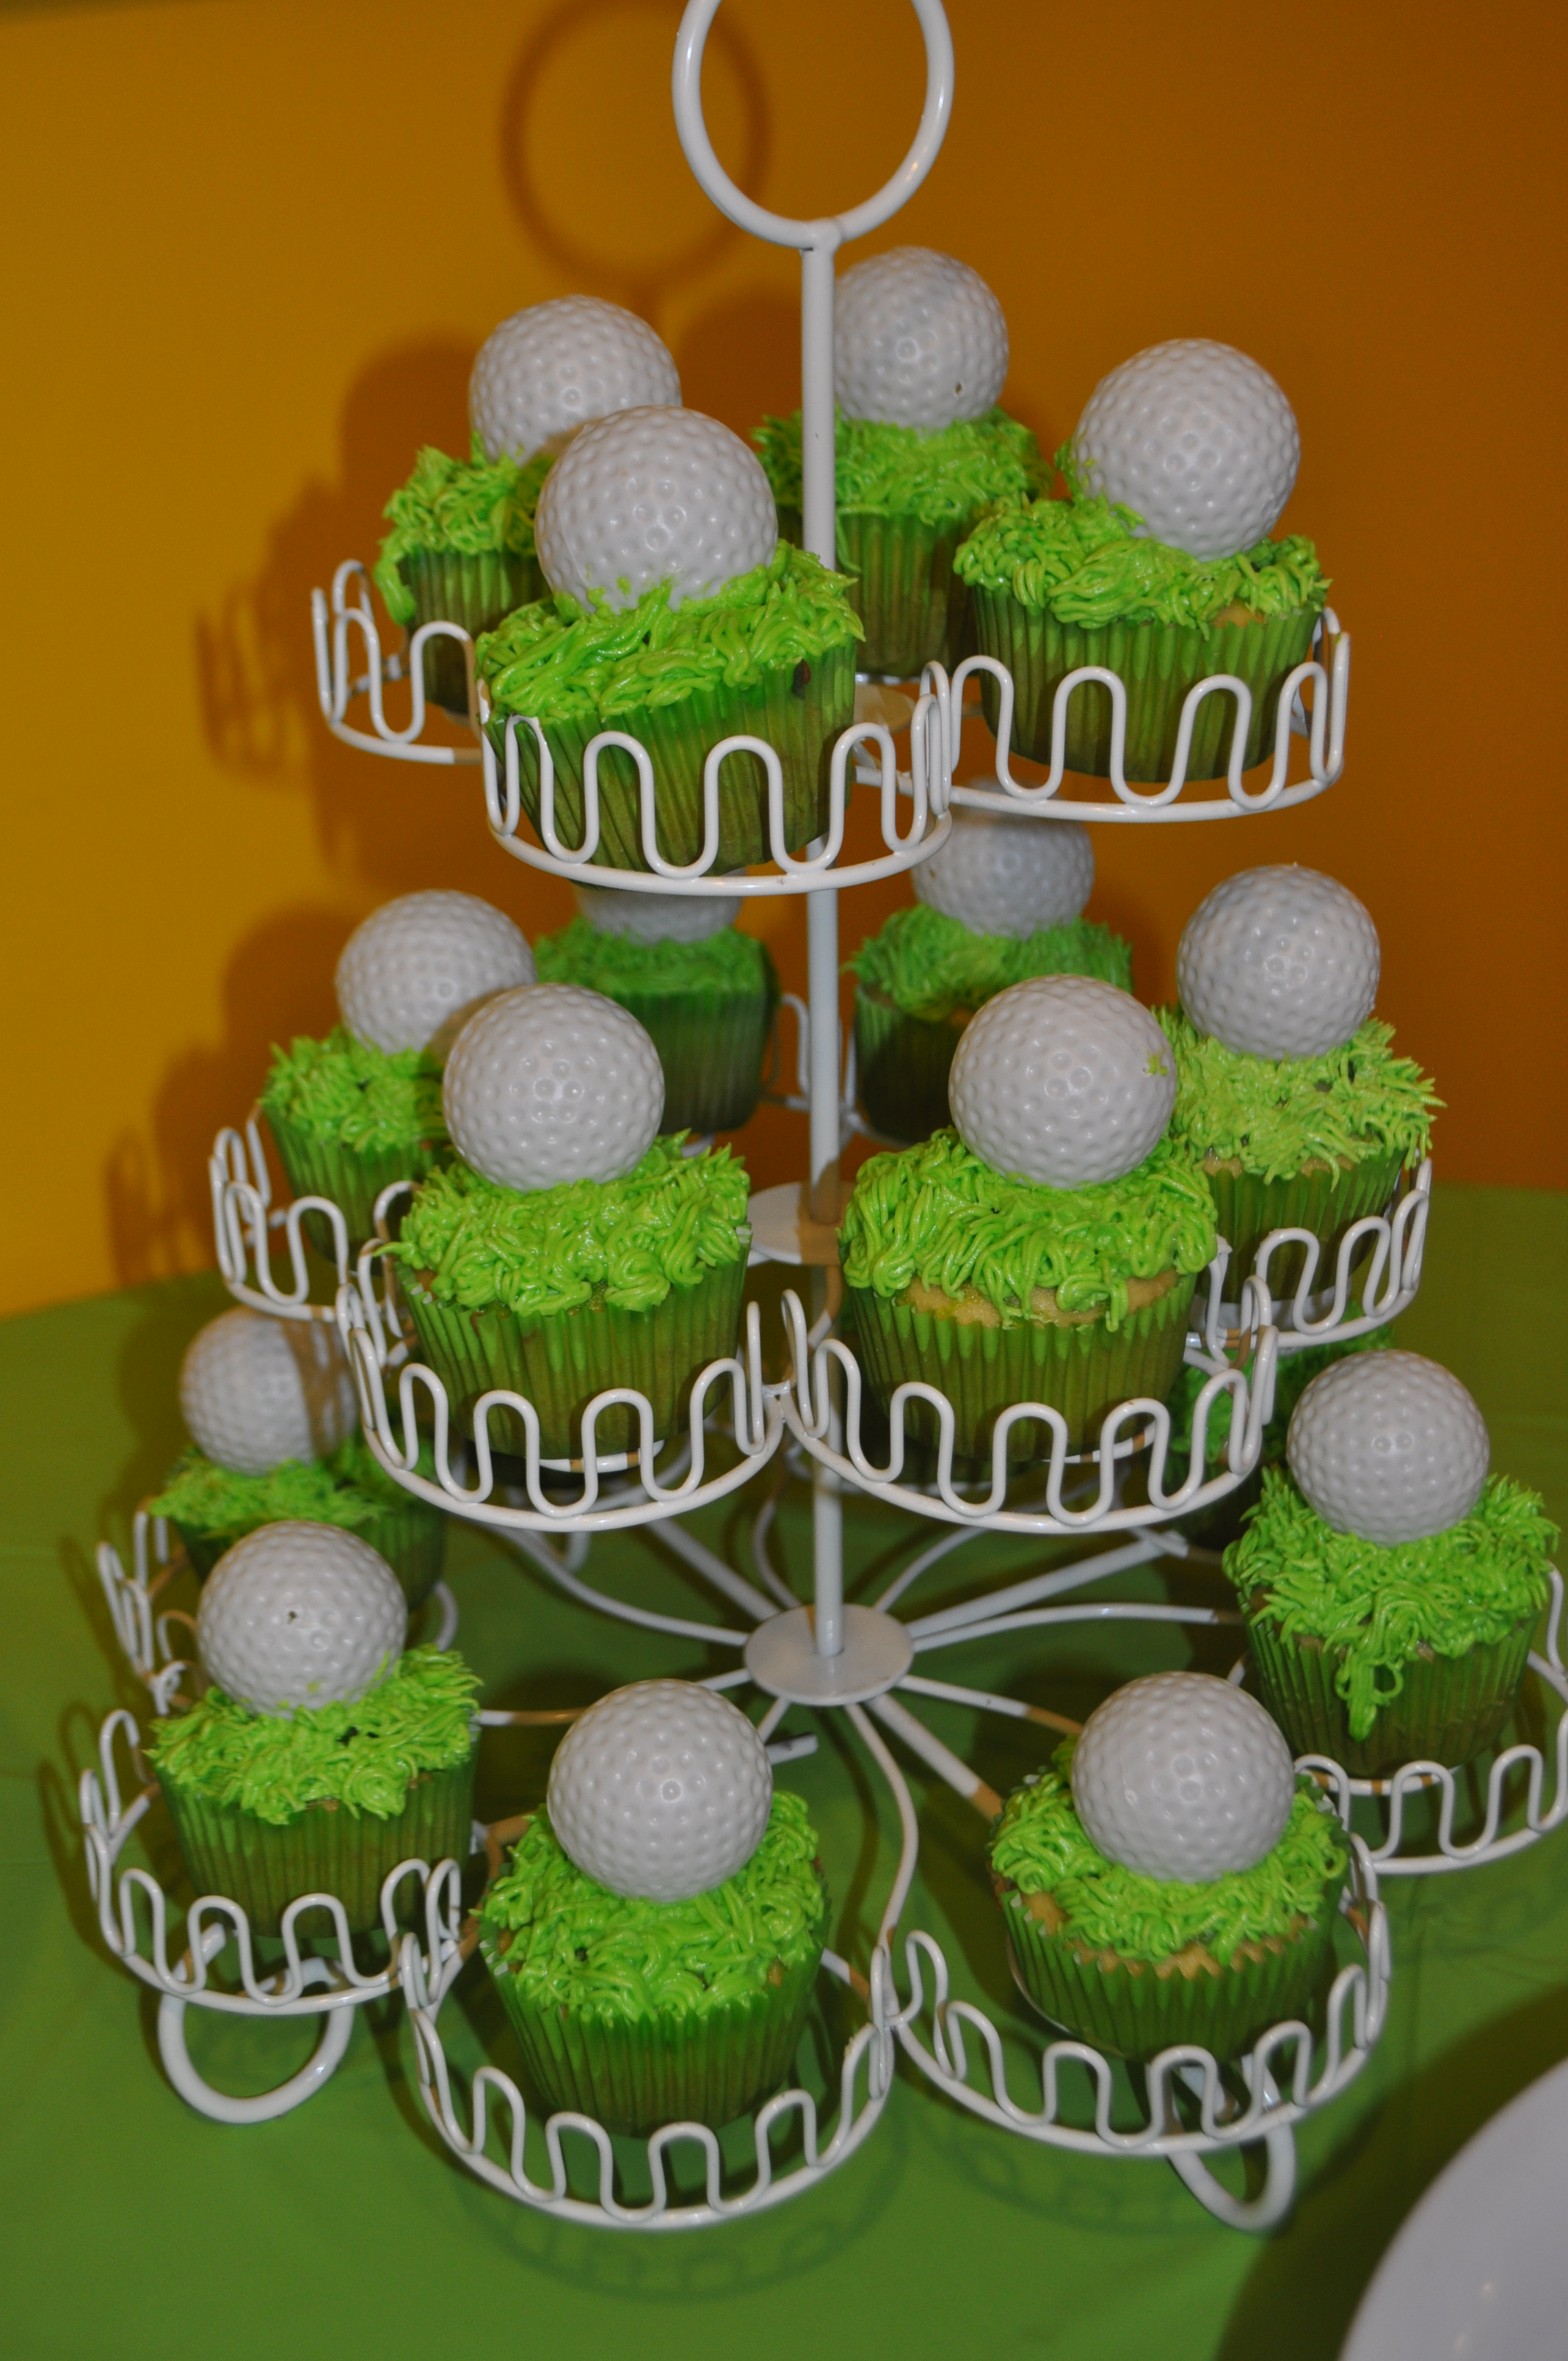 Wondrous Gus Golf Themed 2Nd Birthday Party Home Interior And Landscaping Pimpapssignezvosmurscom